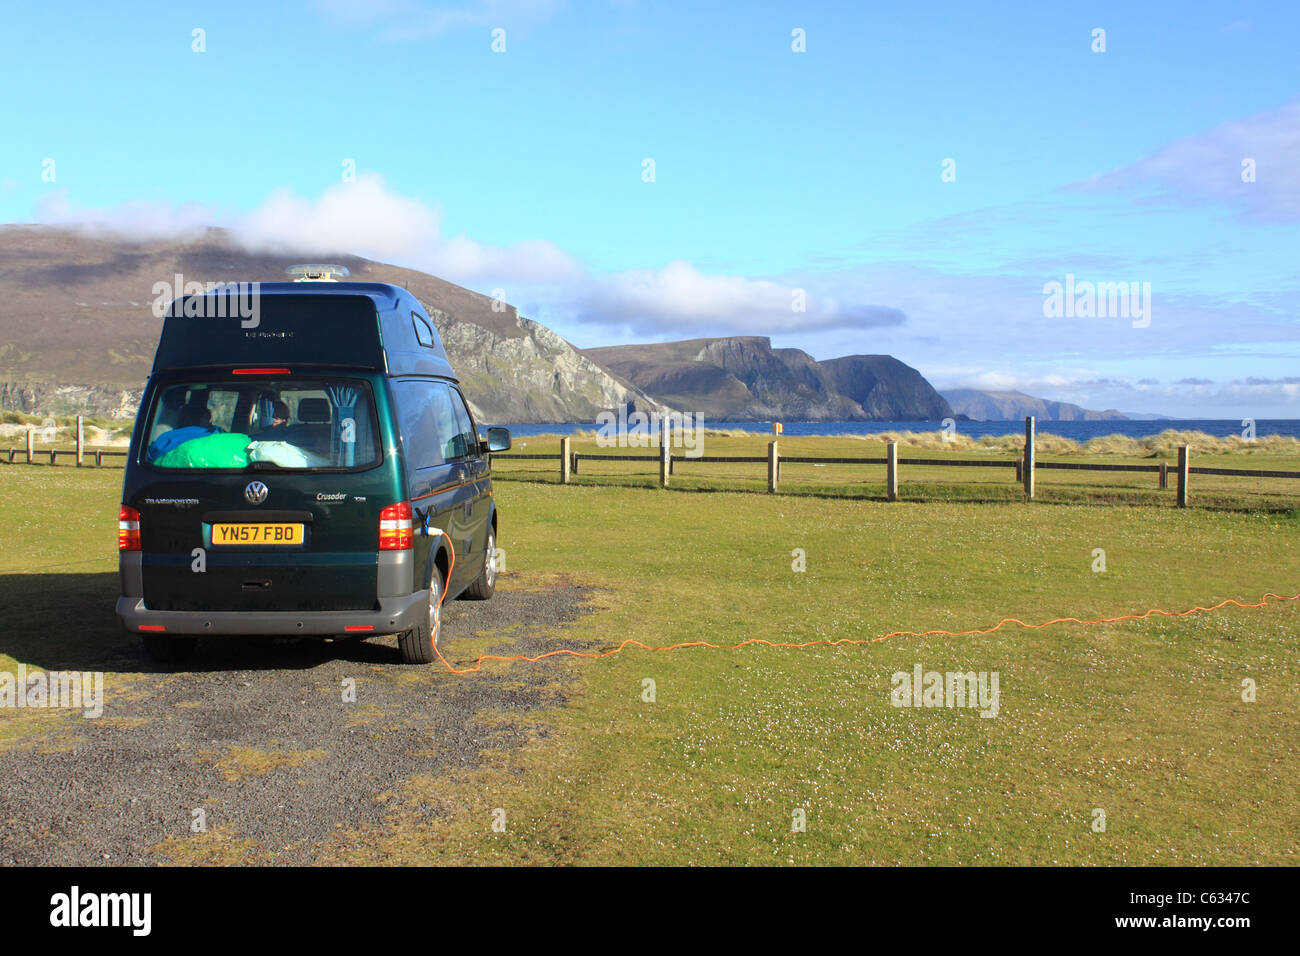 VW campervan at a campsite in Keel, Achill Island, Ireland, with the Minaun cliffs in the distance - Stock Image